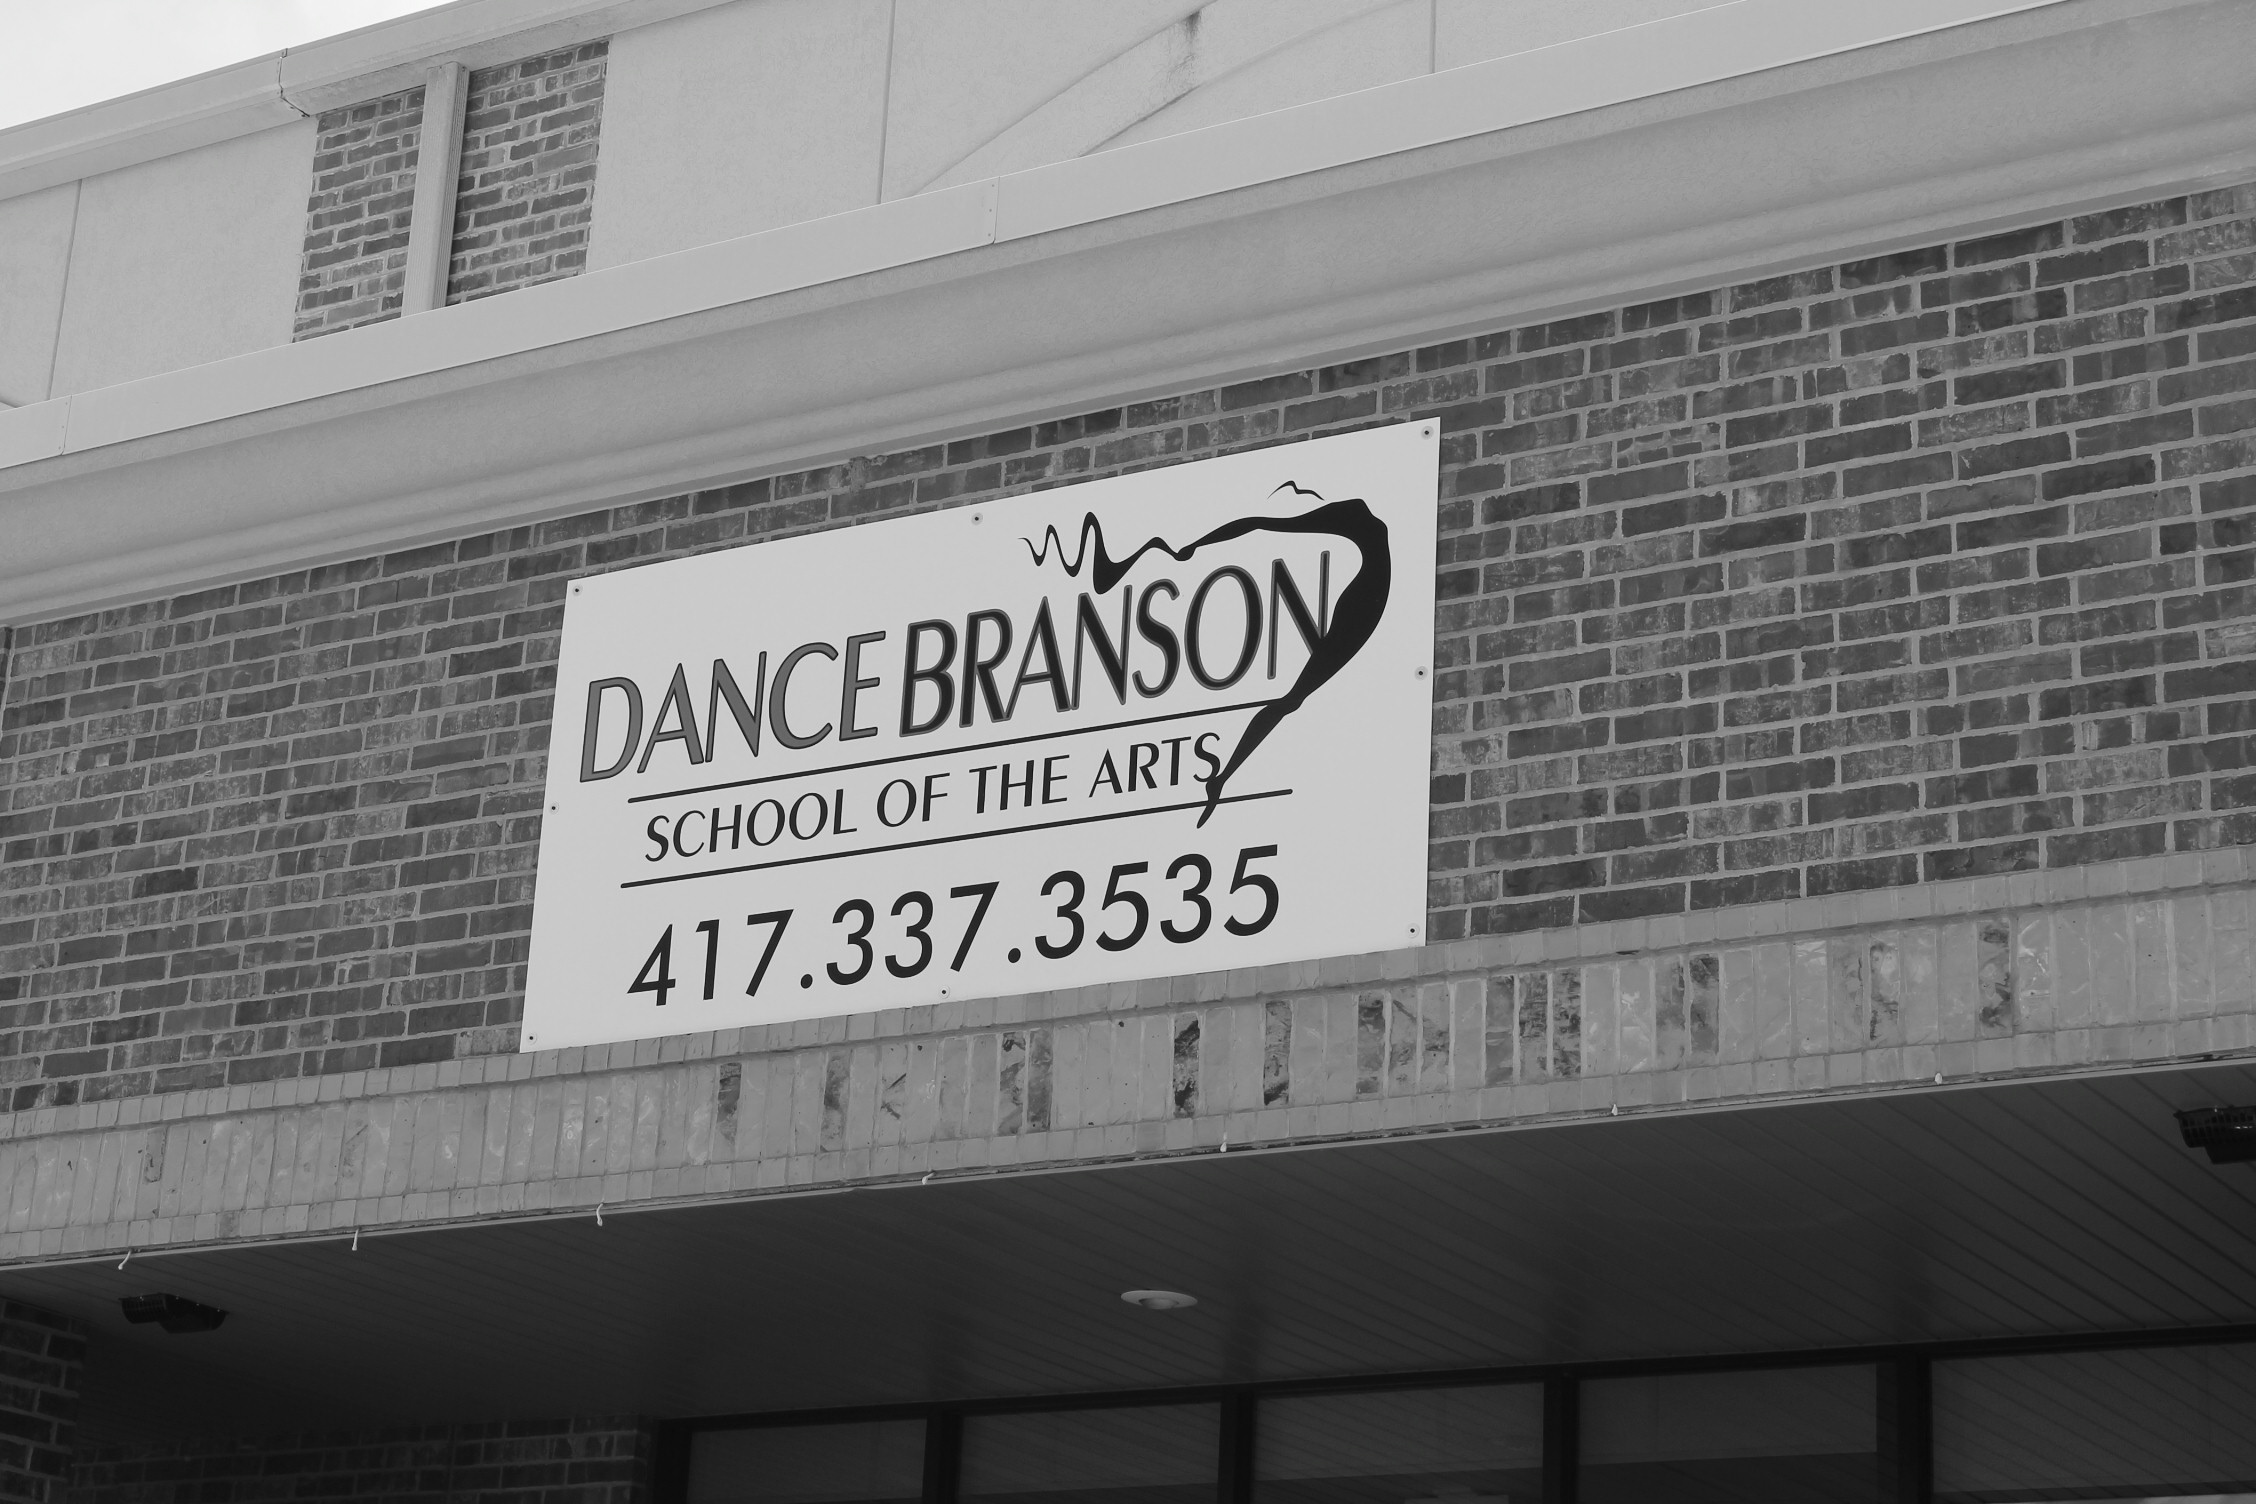 Welcome to Dance Branson